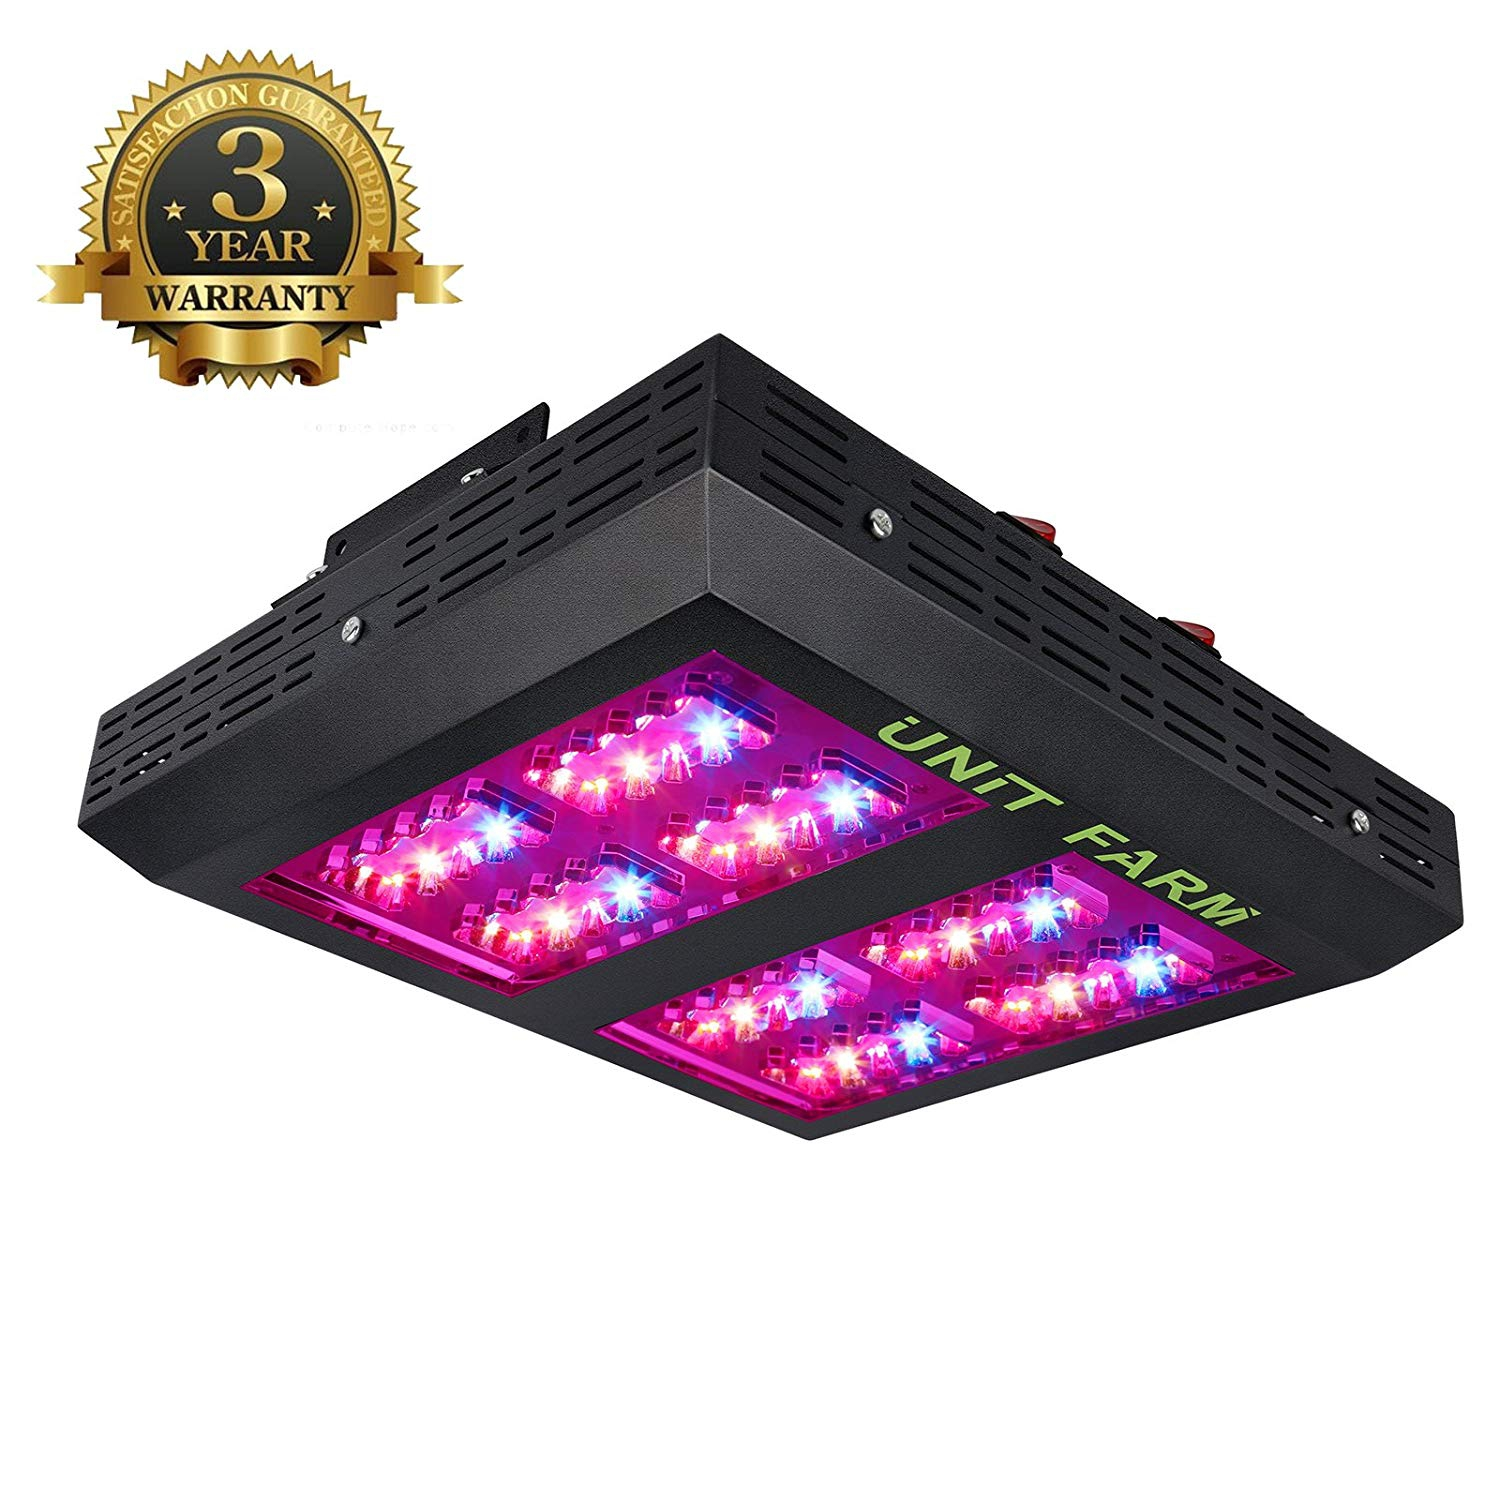 Unit Farm UFO 80 LED Grow Light Full Spectrum 170W Review Coupon